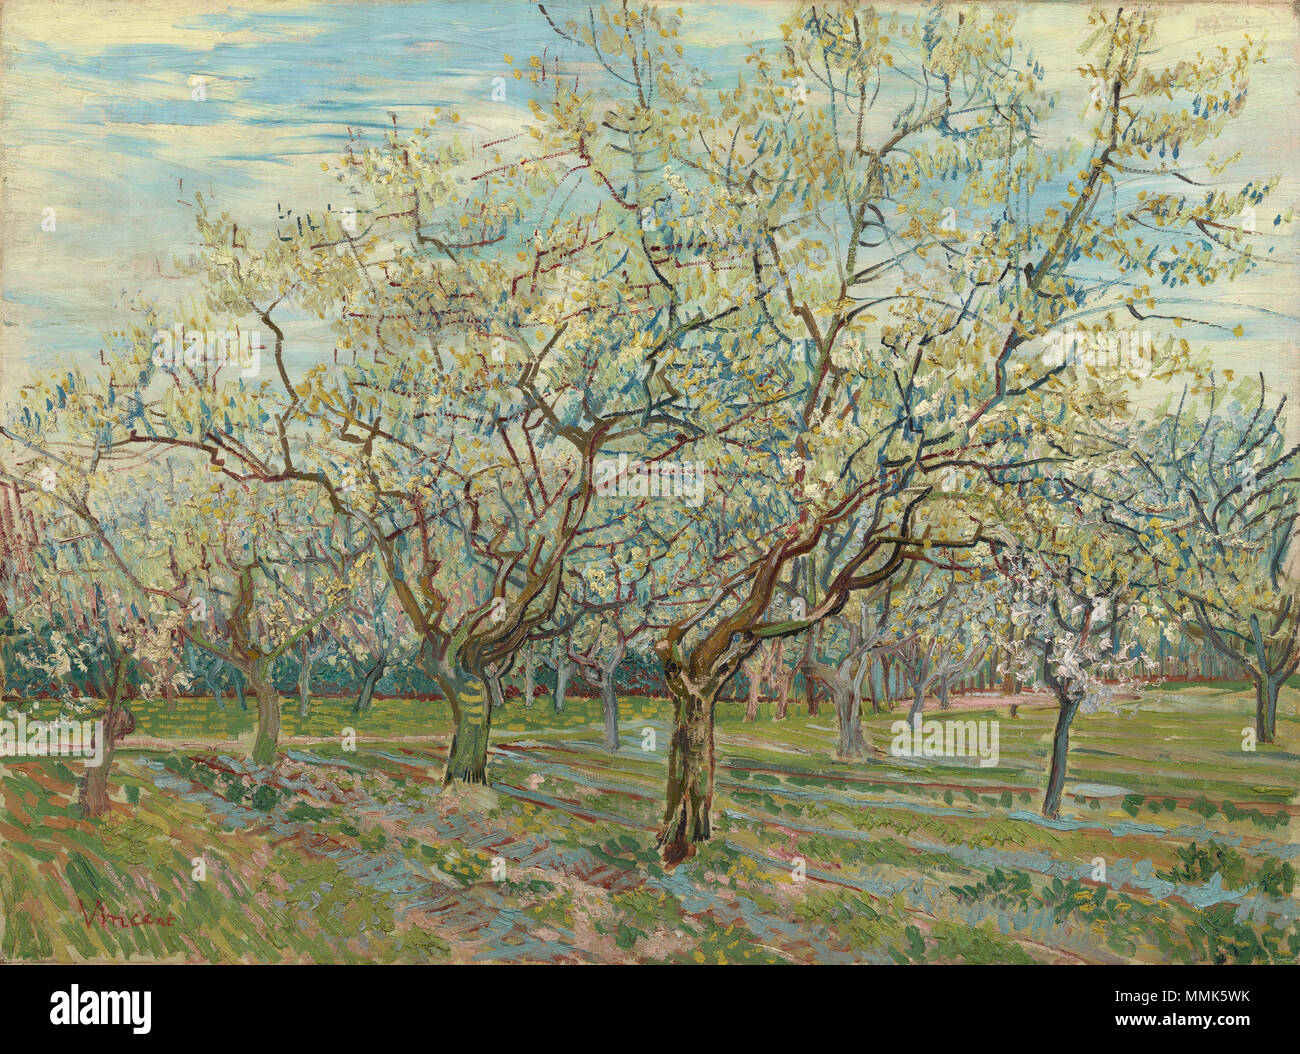 Gogh orchard stock photos & gogh orchard stock images page 2 alamy